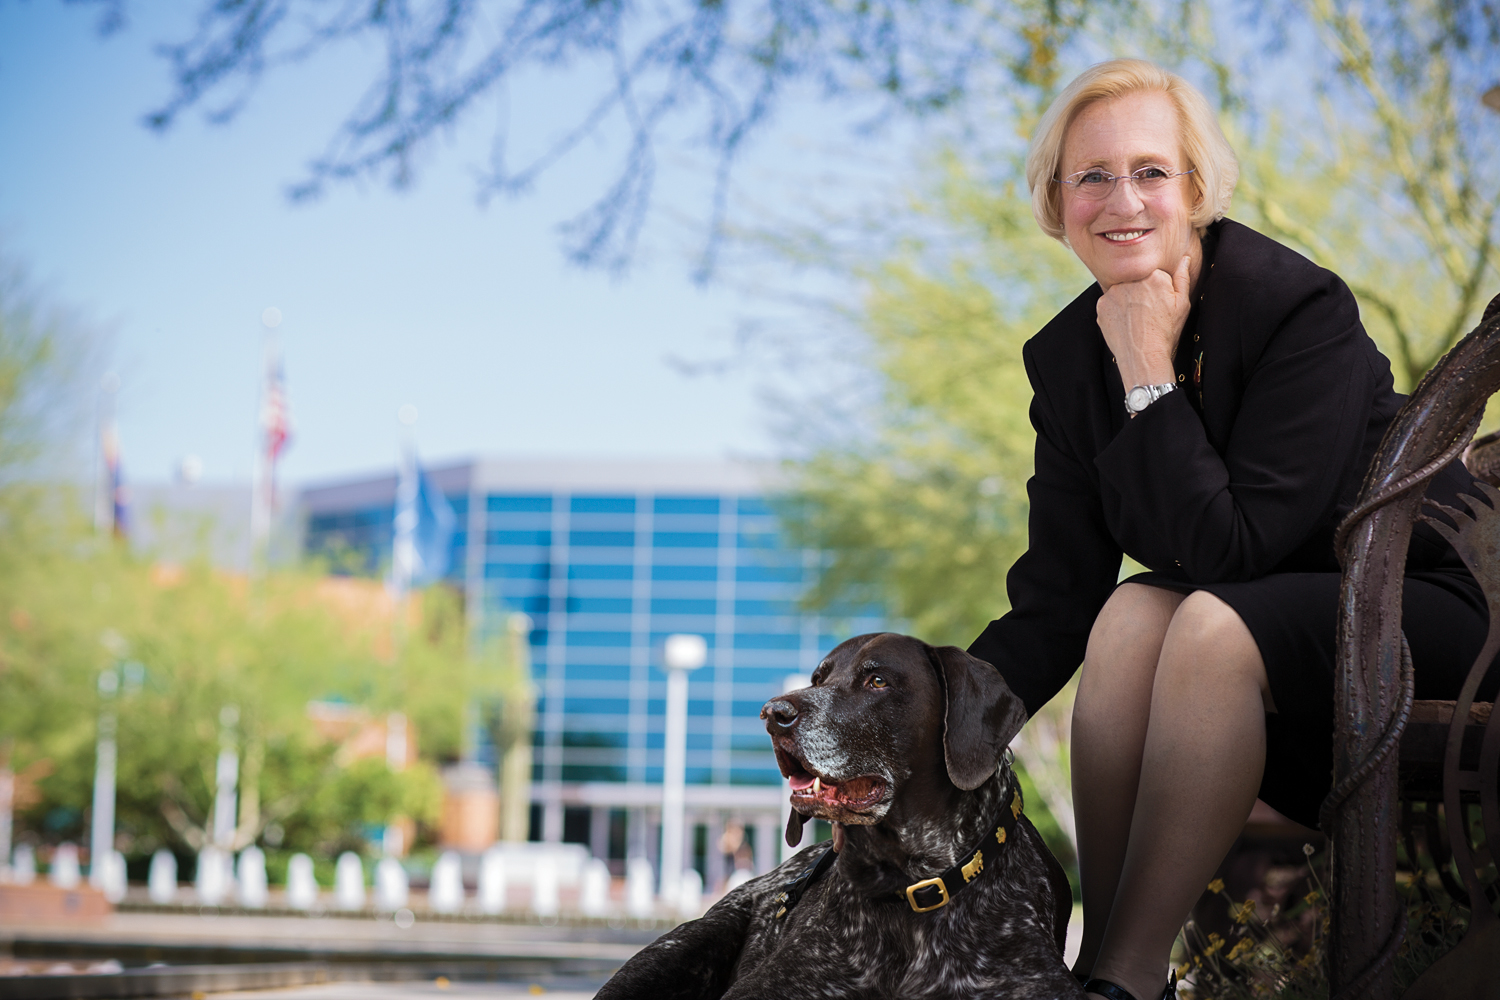 Midwestern University Glendale Az >> Midwestern University Announces Founding of College of ...